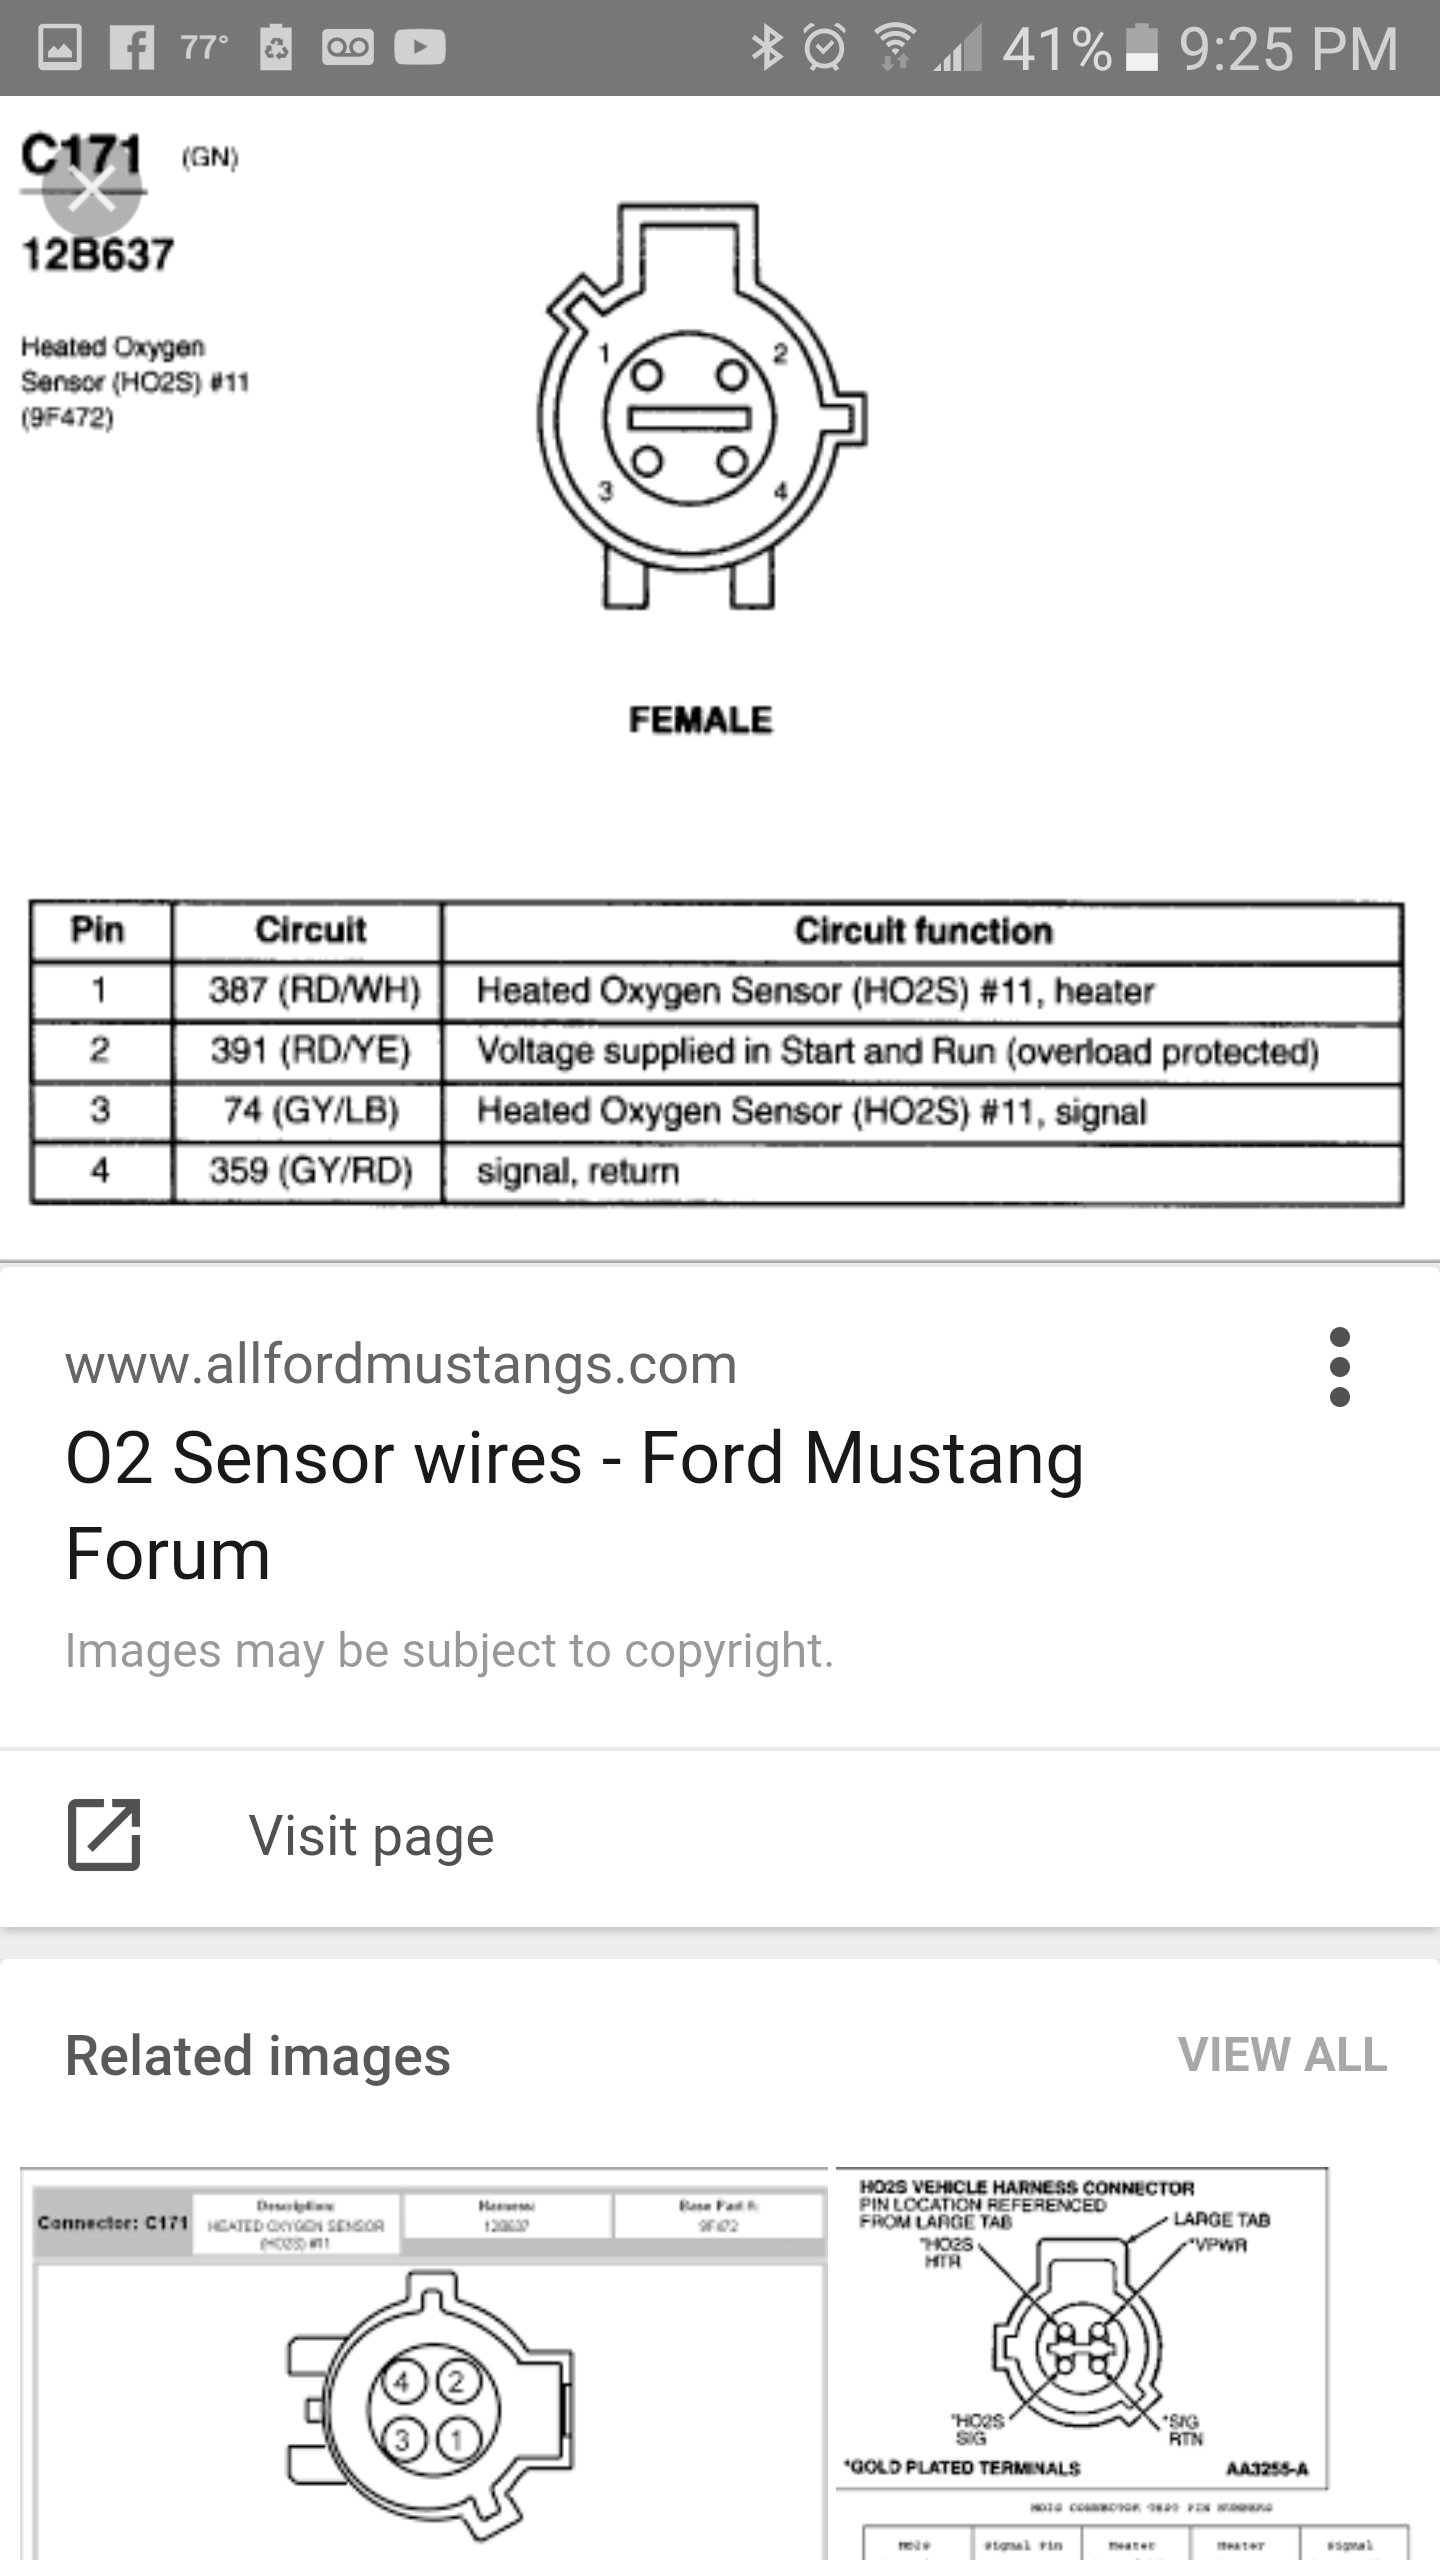 87 mustang gt o2 wiring harness diagram wiring diagram technic 87 mustang gt o2 wiring harness diagram